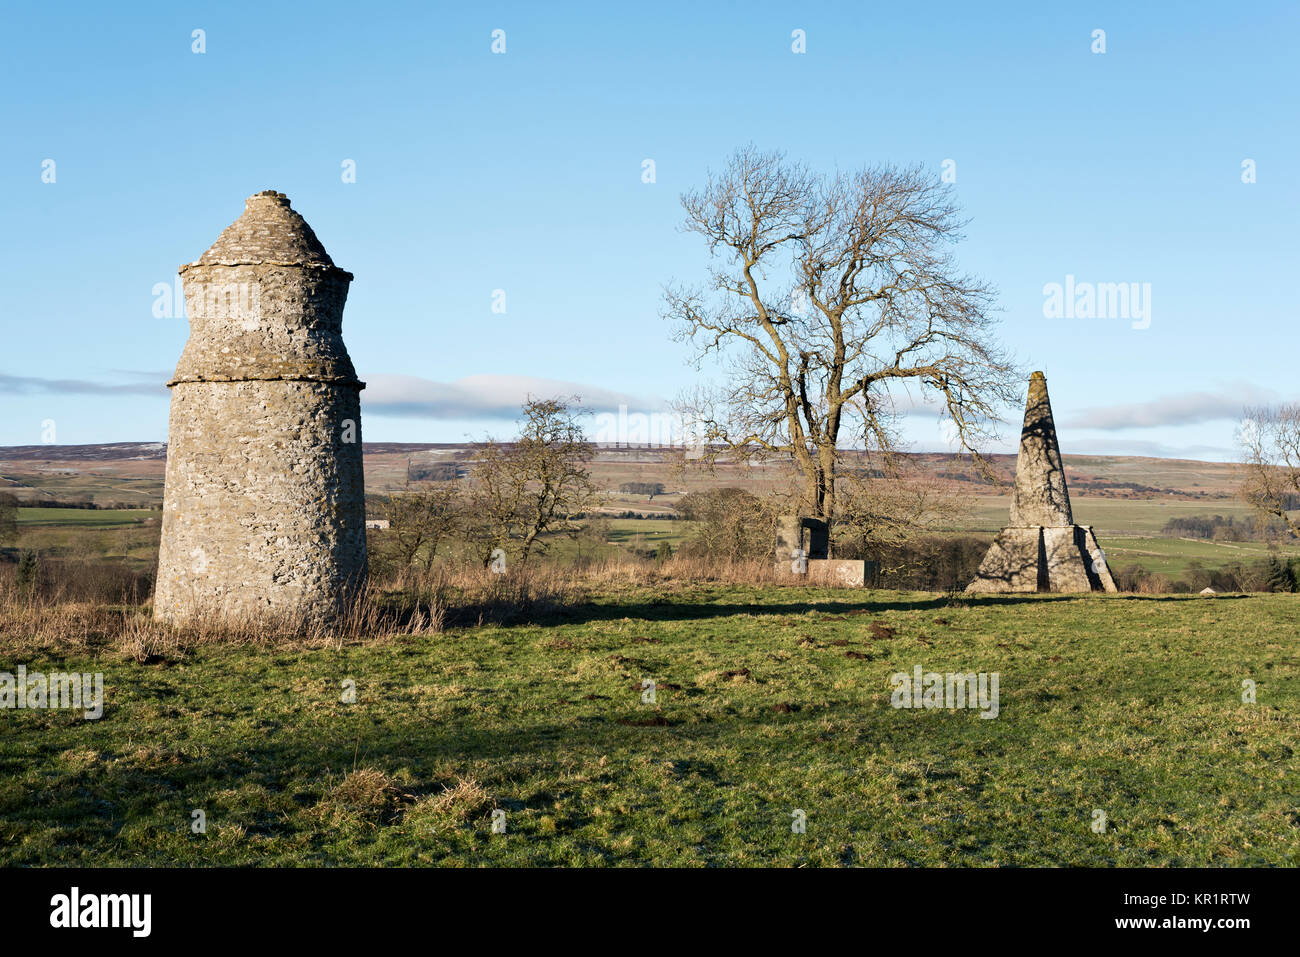 Onorevole Sykes follie. Parco Sorrelsykes, Edgley, Aysgarth, Yorkshire Dales National Park, Regno Unito Immagini Stock